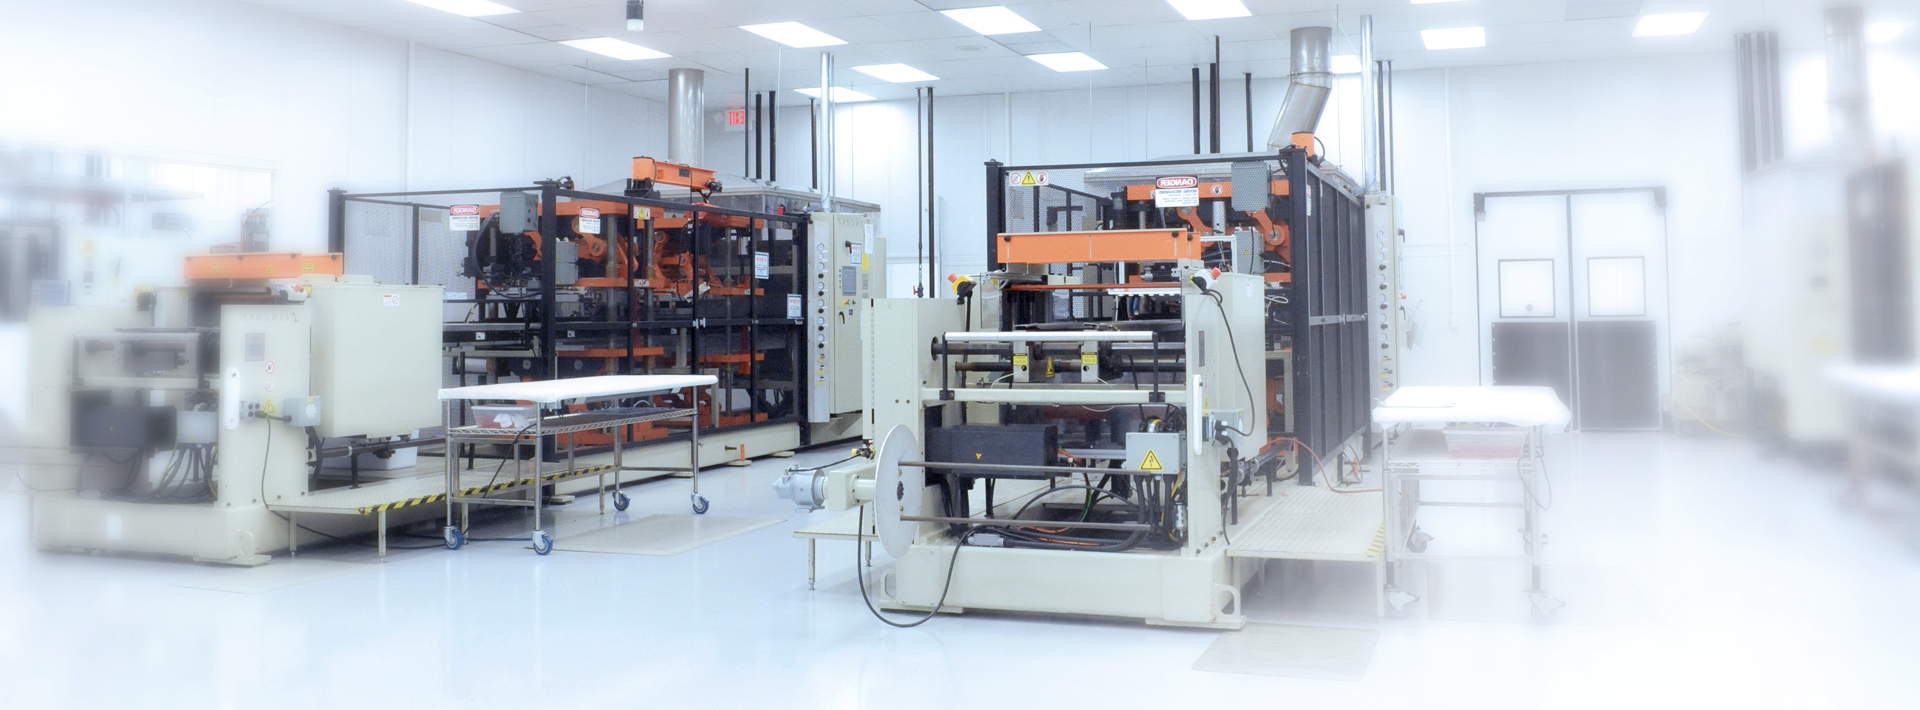 Thermoforming Machines in Clean Room